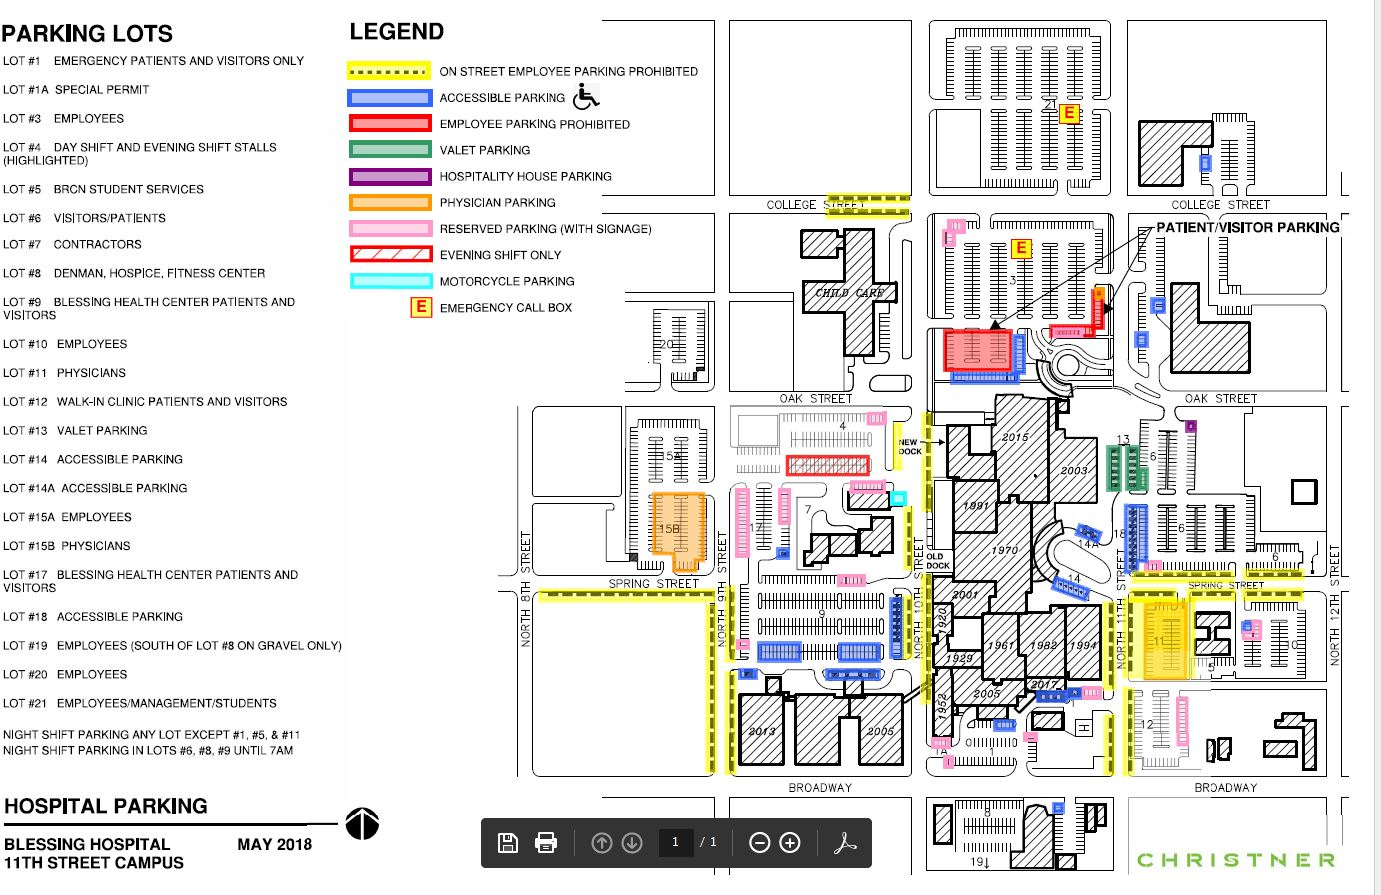 Illinois College Campus Map.Campus Information Maps Blessing Rieman College Of Nursing